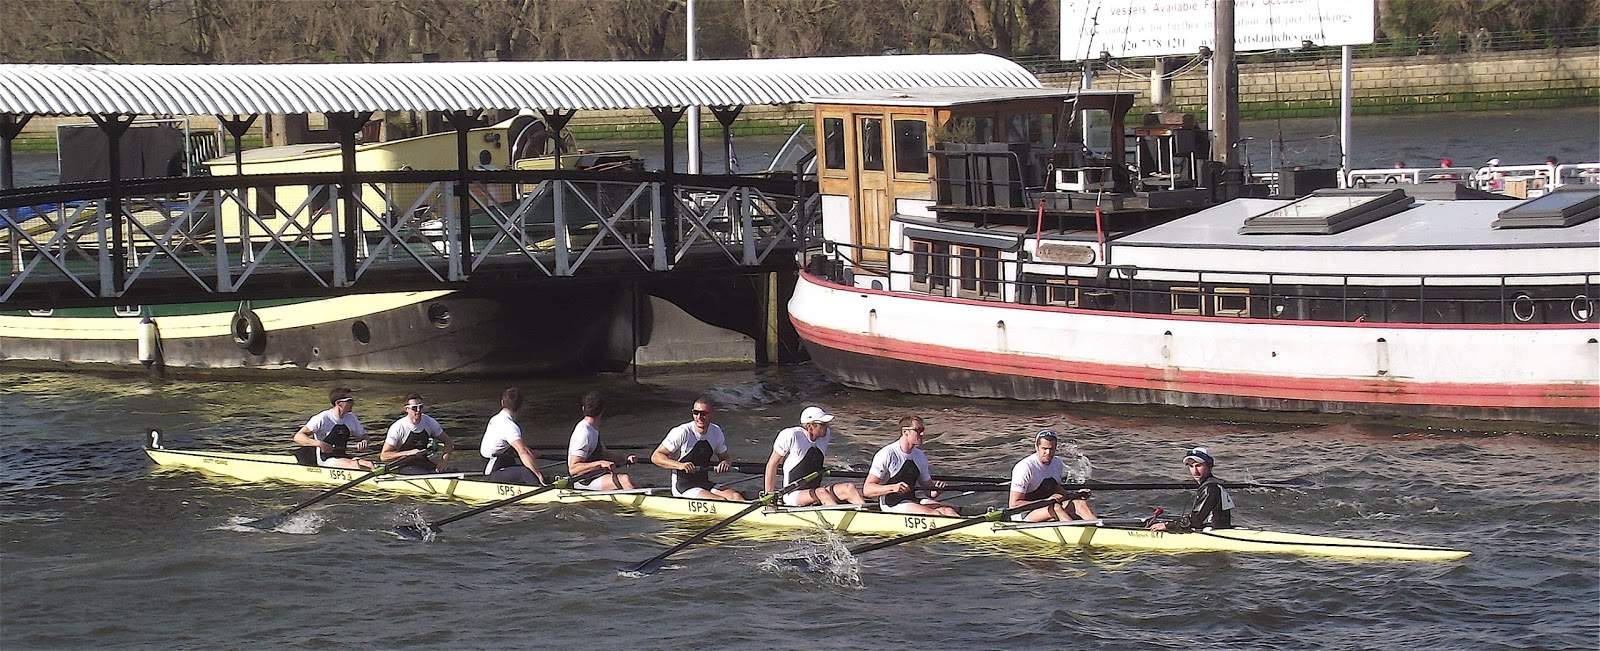 hear the boat sing the head of the river race 2014 not waiving leander i were the first crew to pass the finish line which is just above the ubr stone marking the start of the oxford cambridge boat race